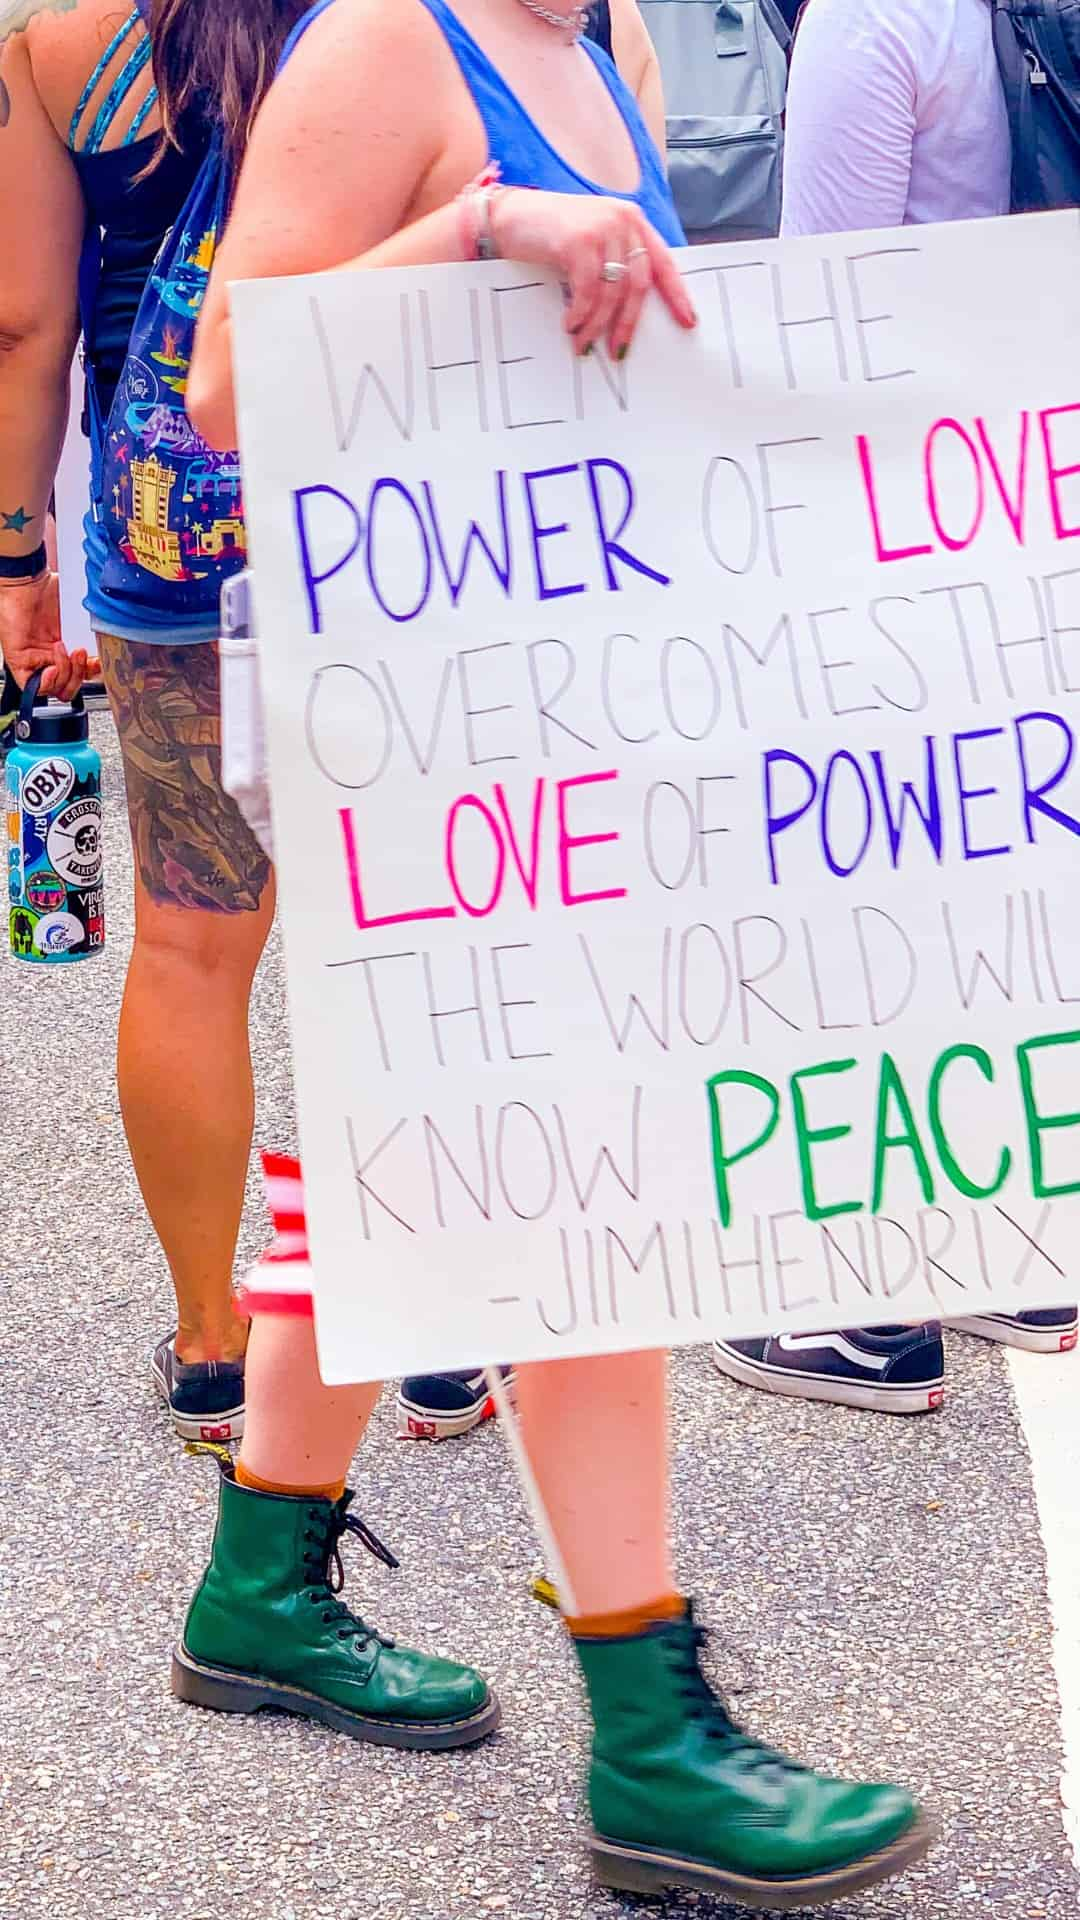 Power of love protest sign